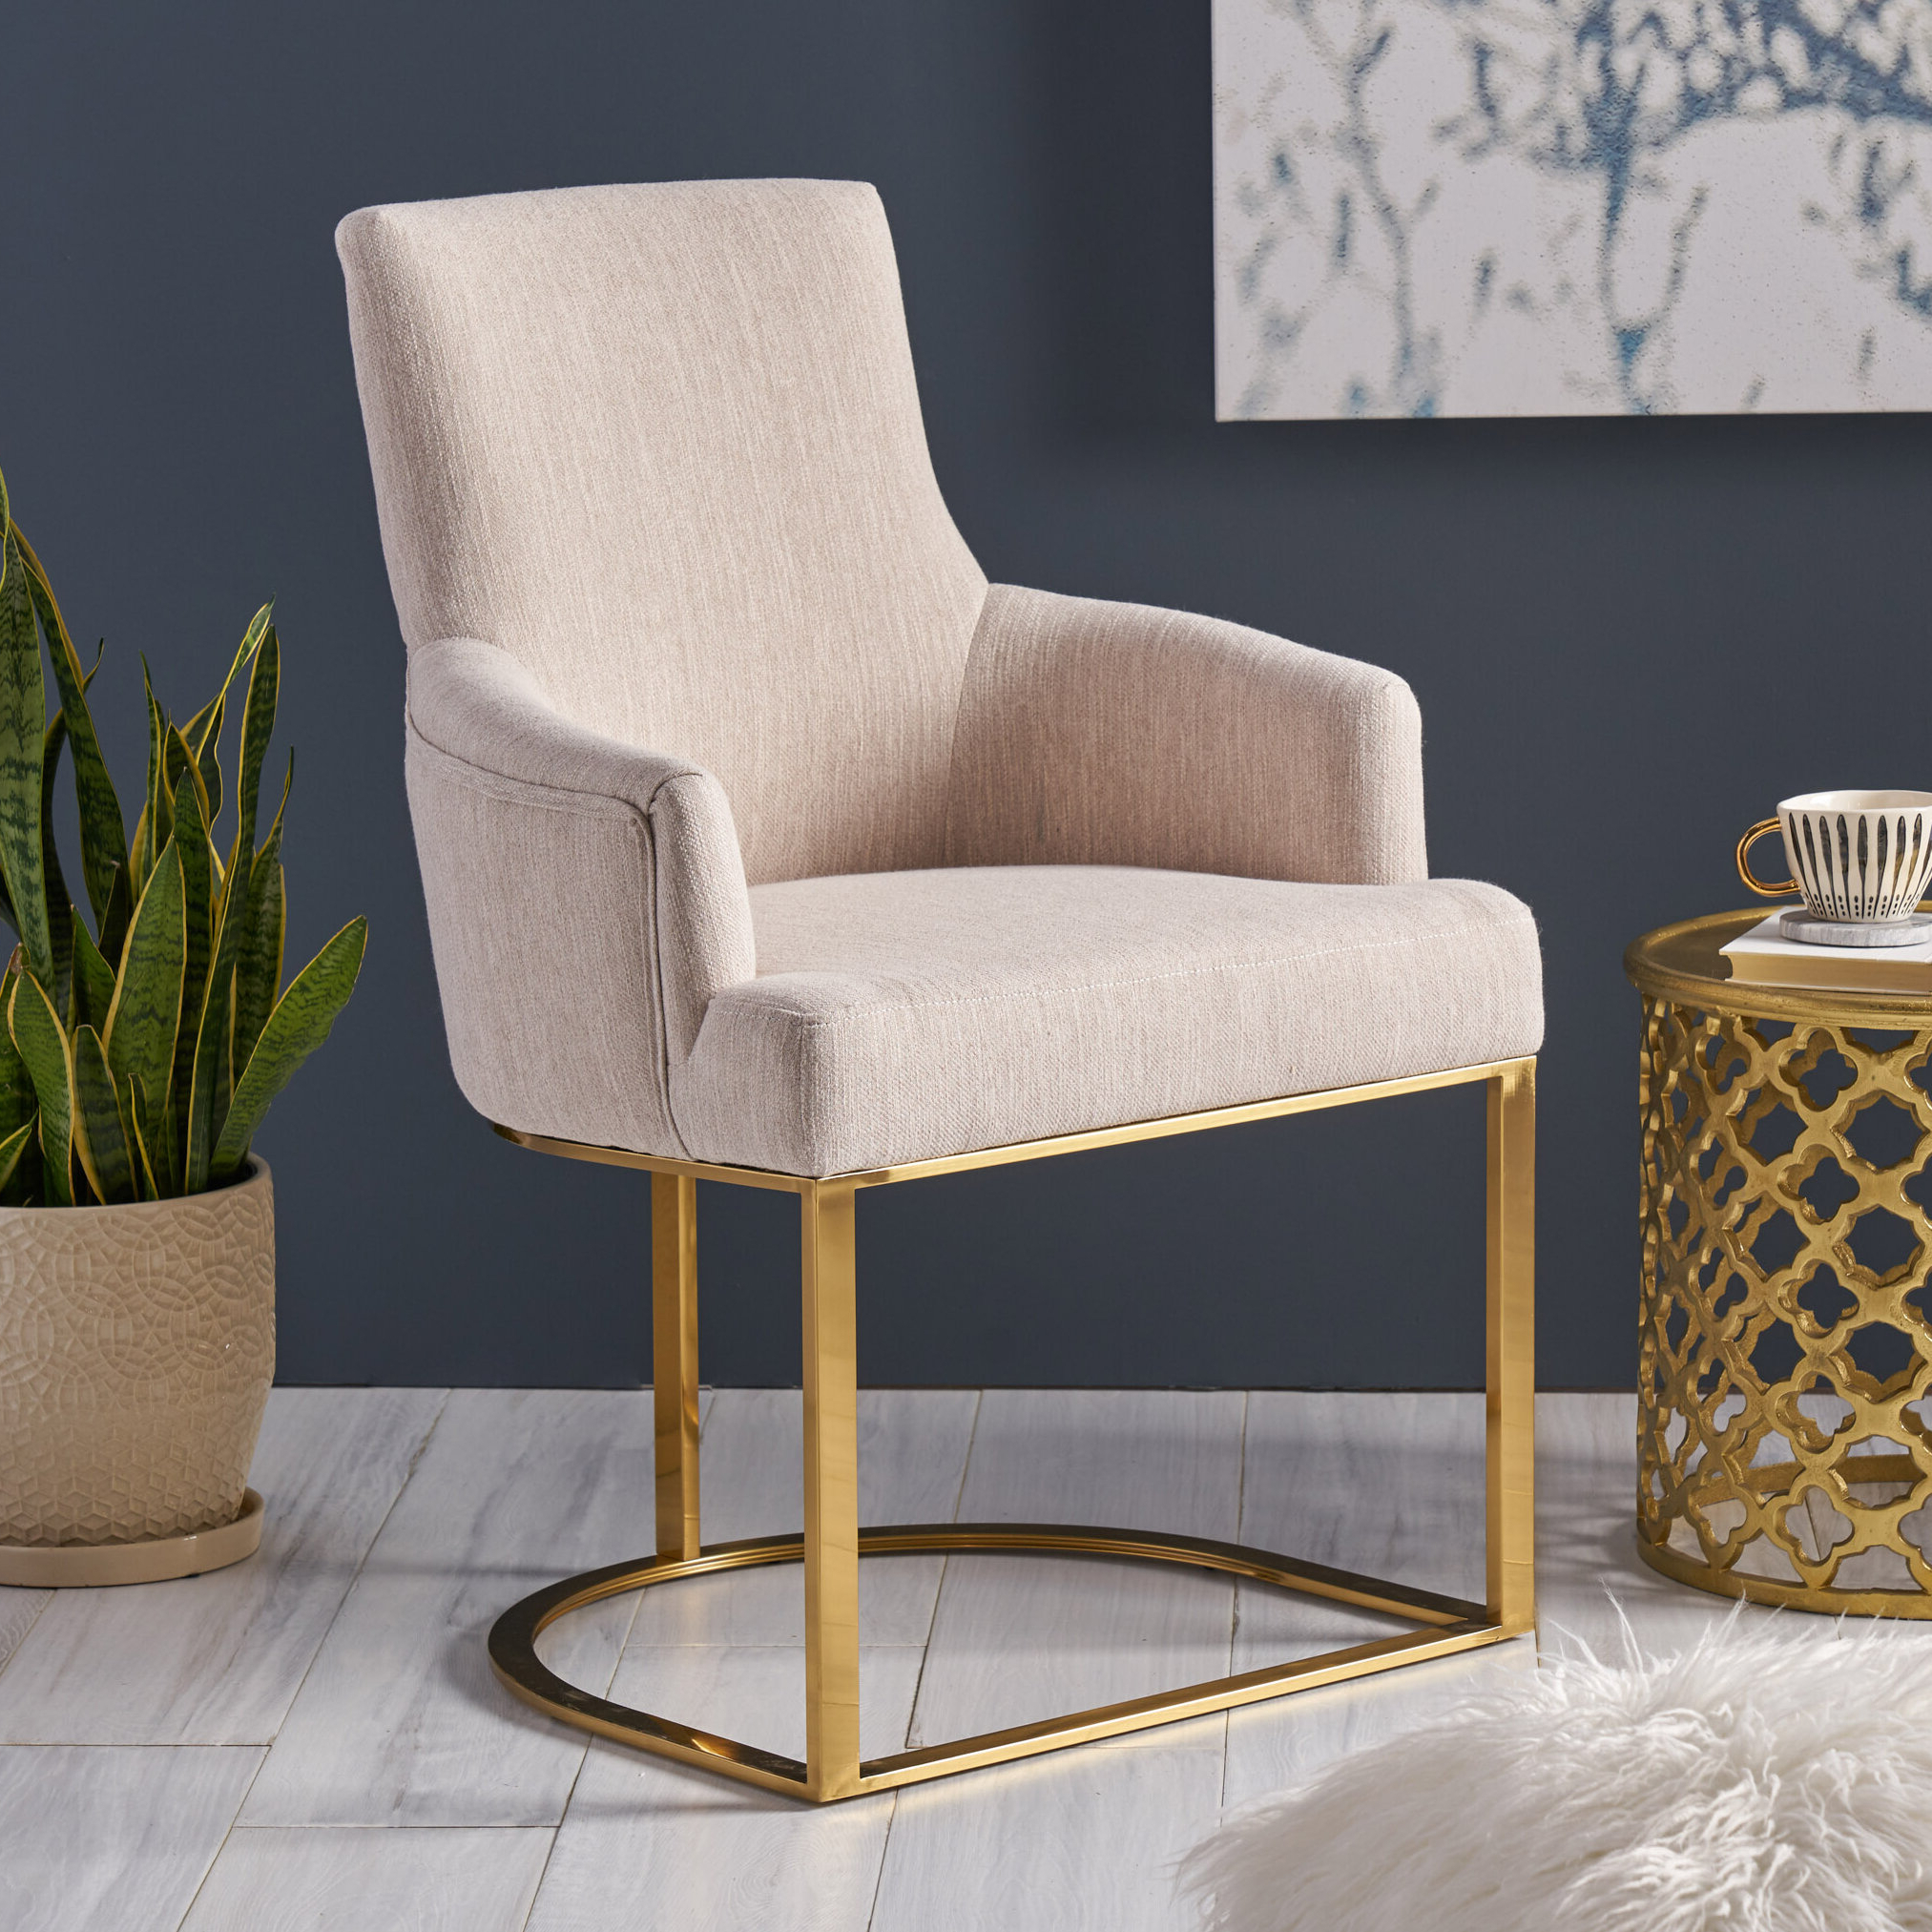 Liston Faux Leather Barrel Chairs Pertaining To 2019 Zac Fabric Armchair (View 17 of 20)